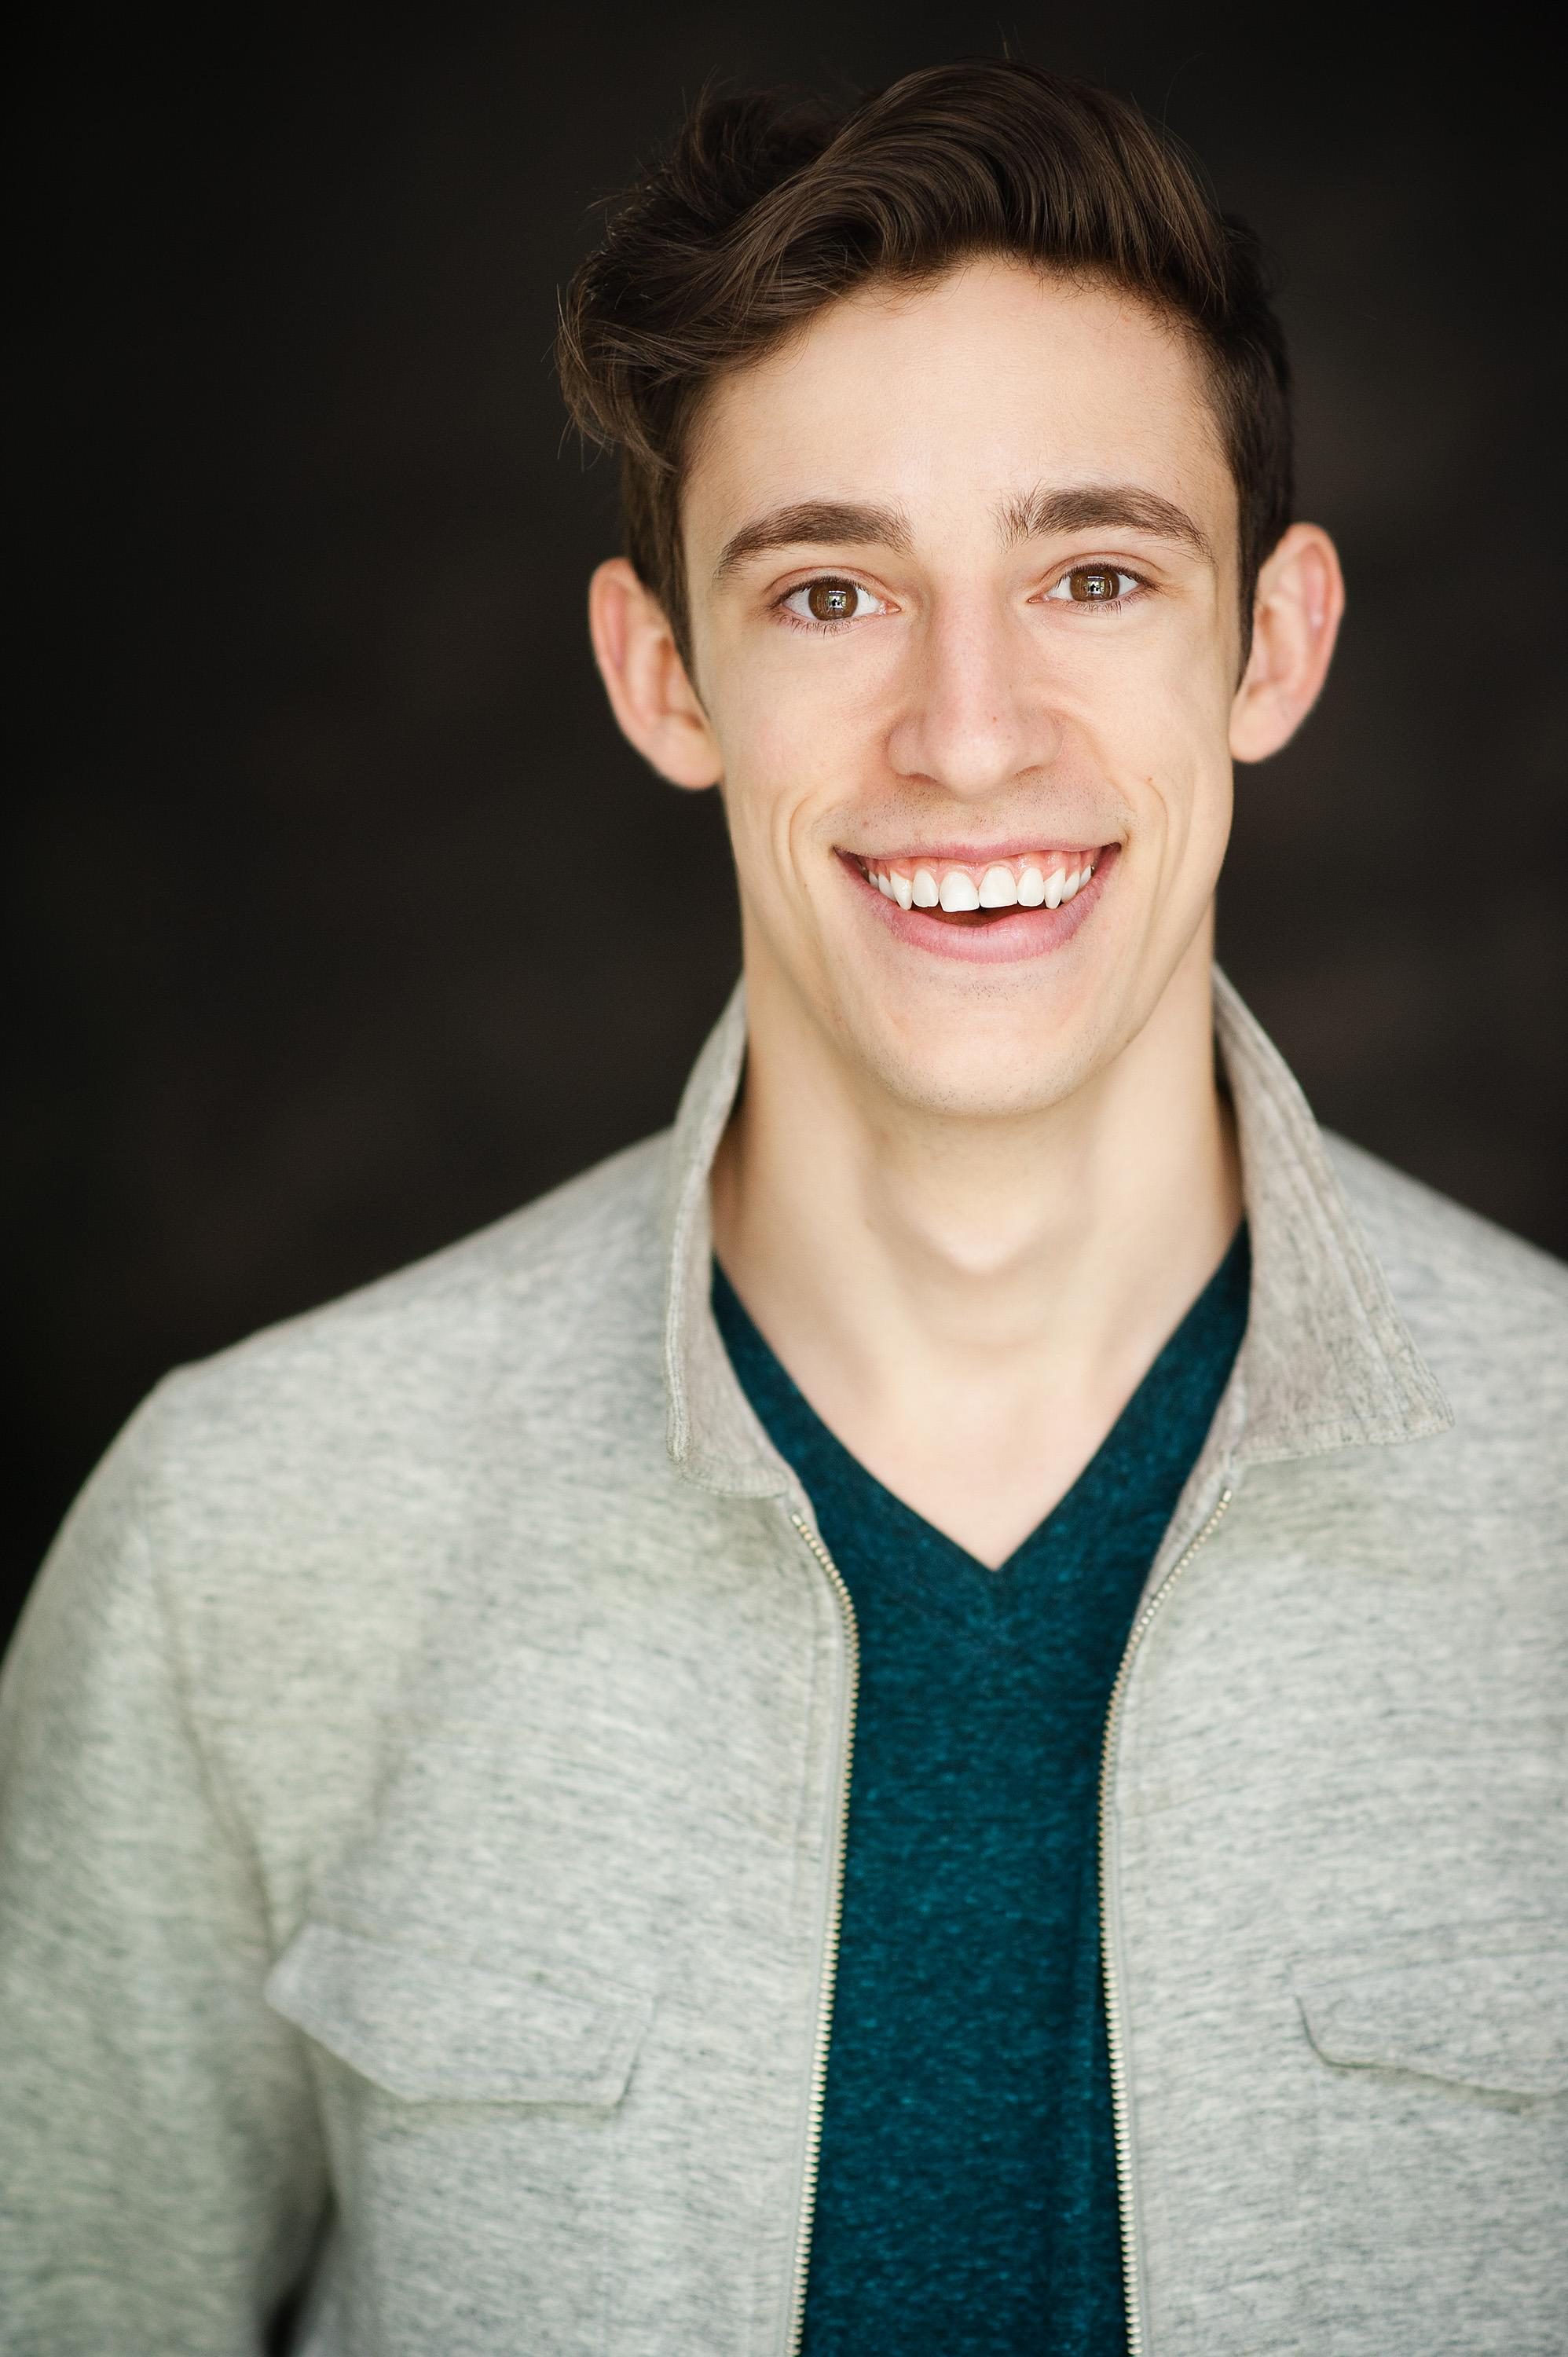 Teo Saefkow - EvanTeo is an actor, dancer, musician, and songwriter around Vancouver. He is also a recent graduate of Studio 58, and is thrilled to be a part of The Aliens. Recent theatre: Fred/ Young Ebenezer in 'A Christmas Carol' (Gateway), Touchstone in 'As You Like It', Joselito in 'The Refugee Hotel', and Troilus in 'Troilus and Cressida' (Studio 58). Teo will be appearing in the world premiere of 'Slime', This June. Teo is originally from Smithers, British Columbia.